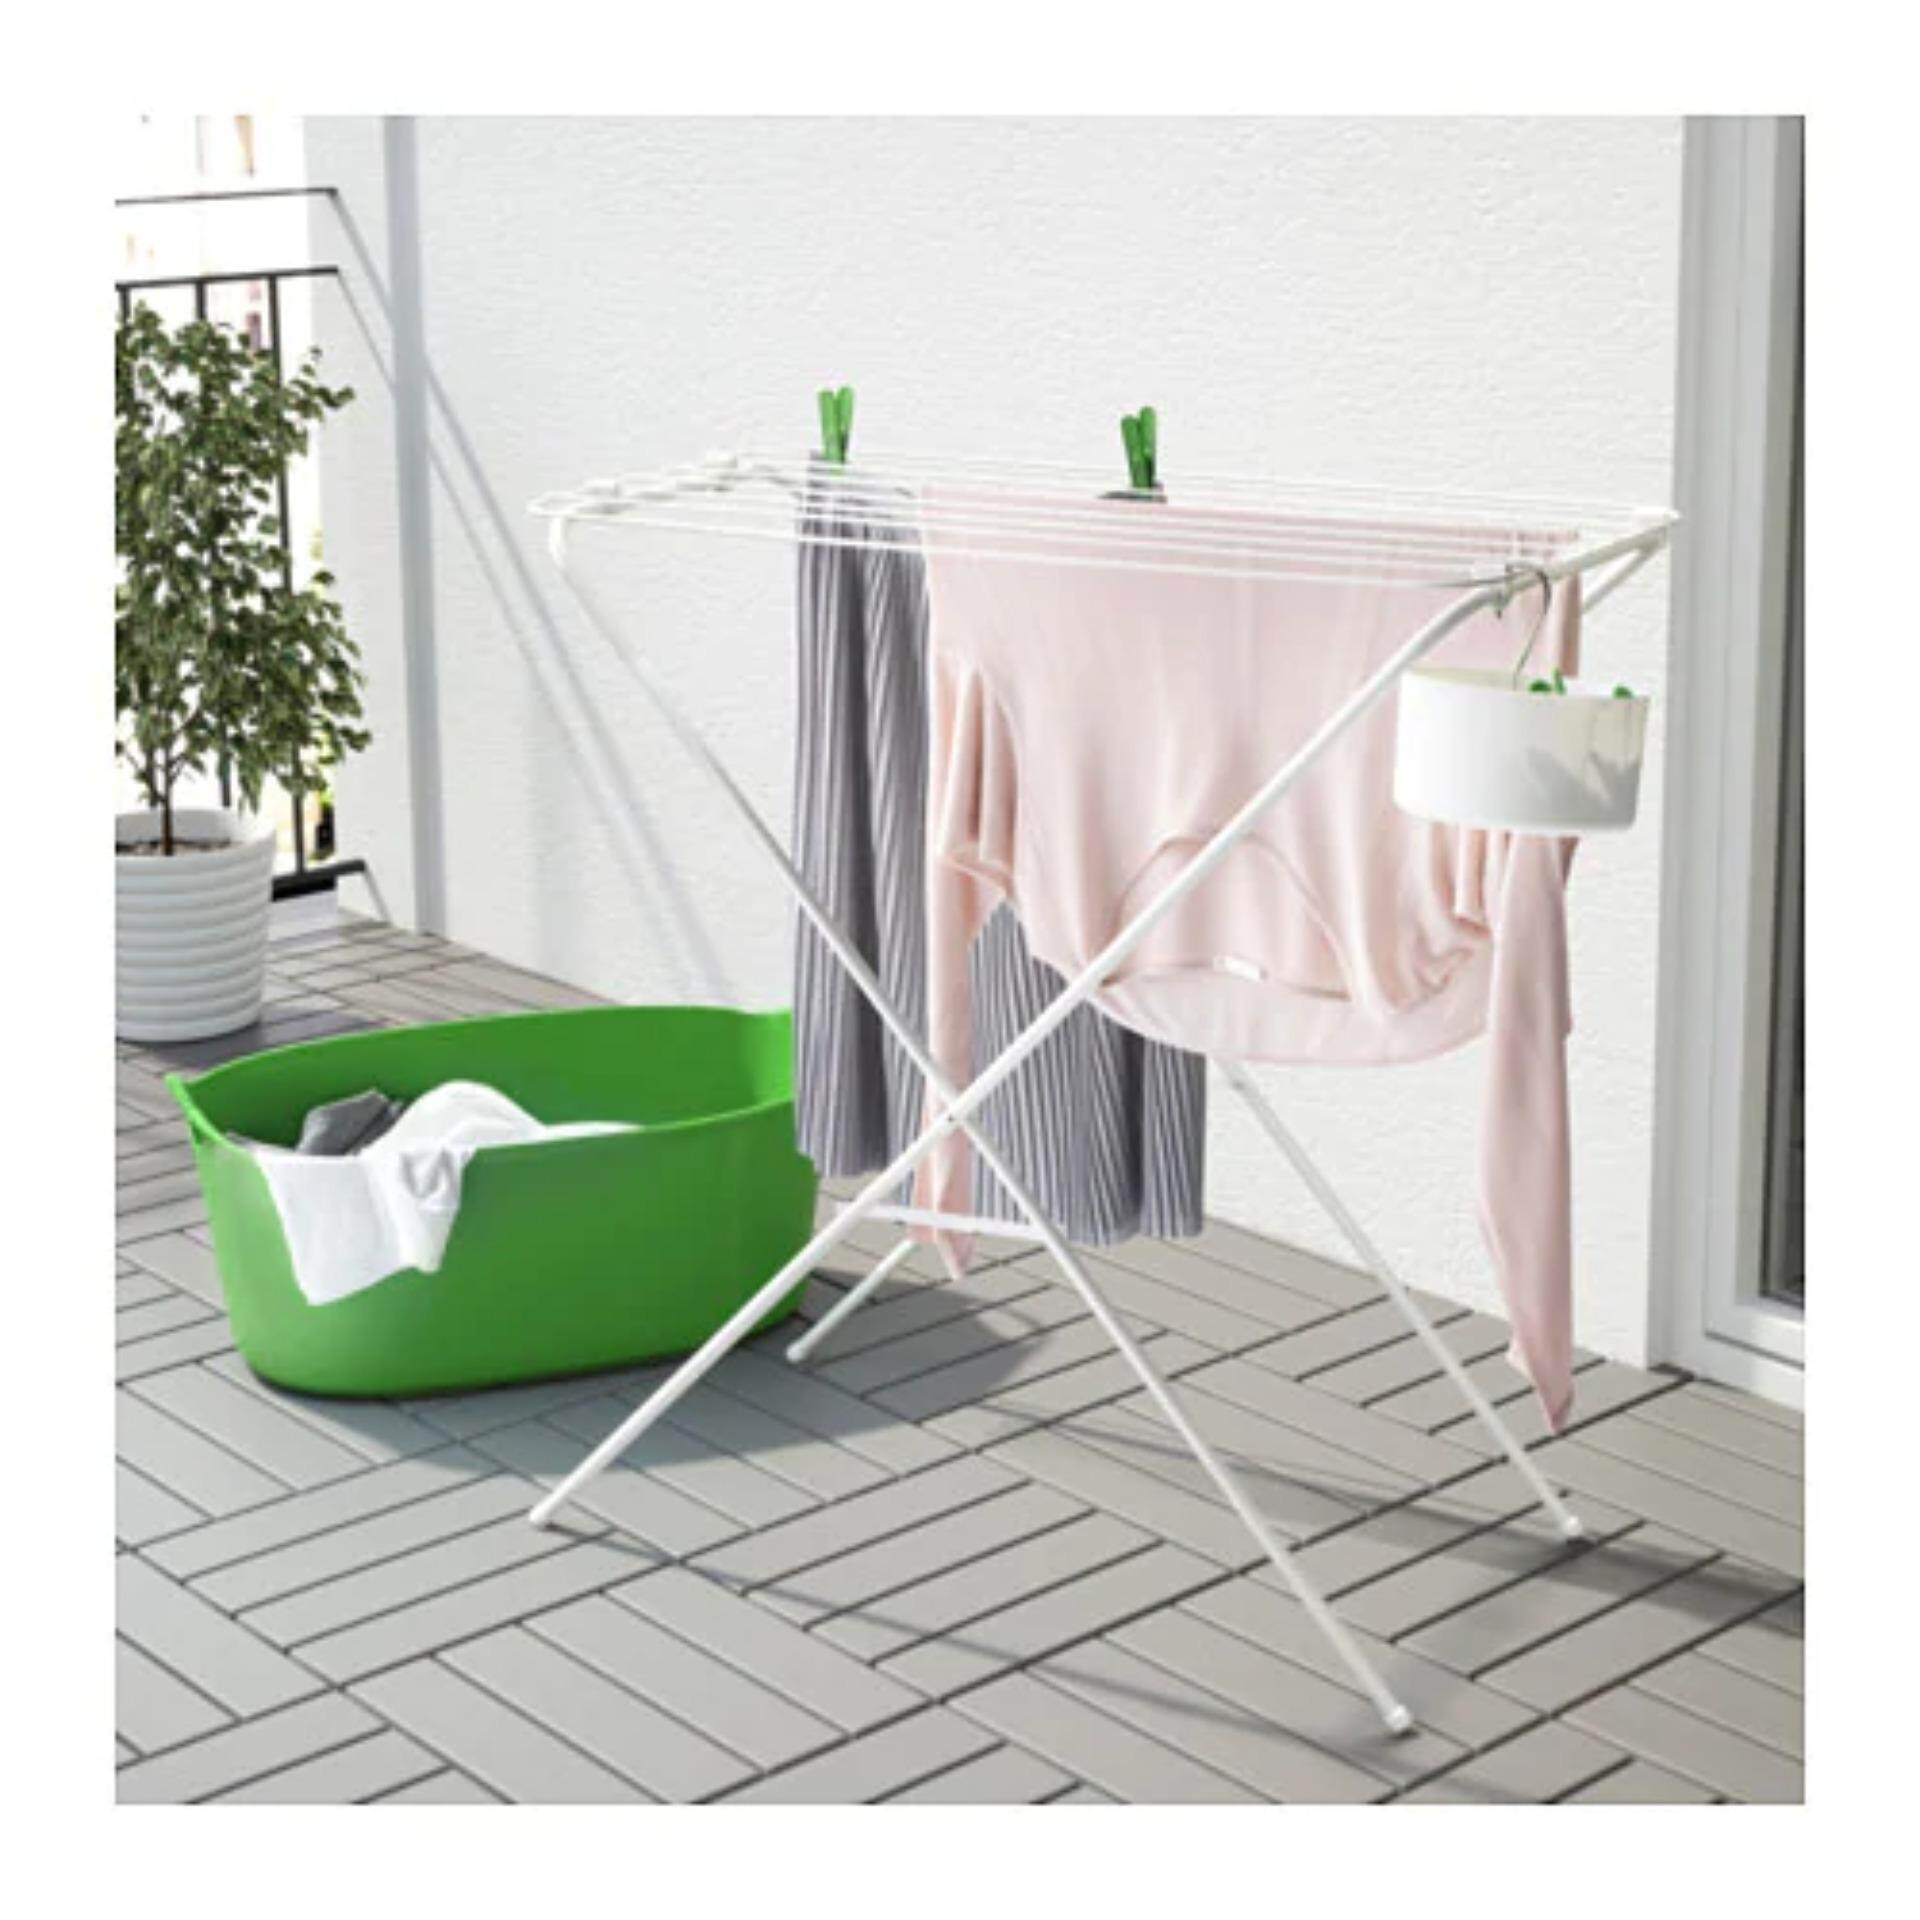 Oem Home Clothes Line Drying Racks Price In Malaysia Best Oem